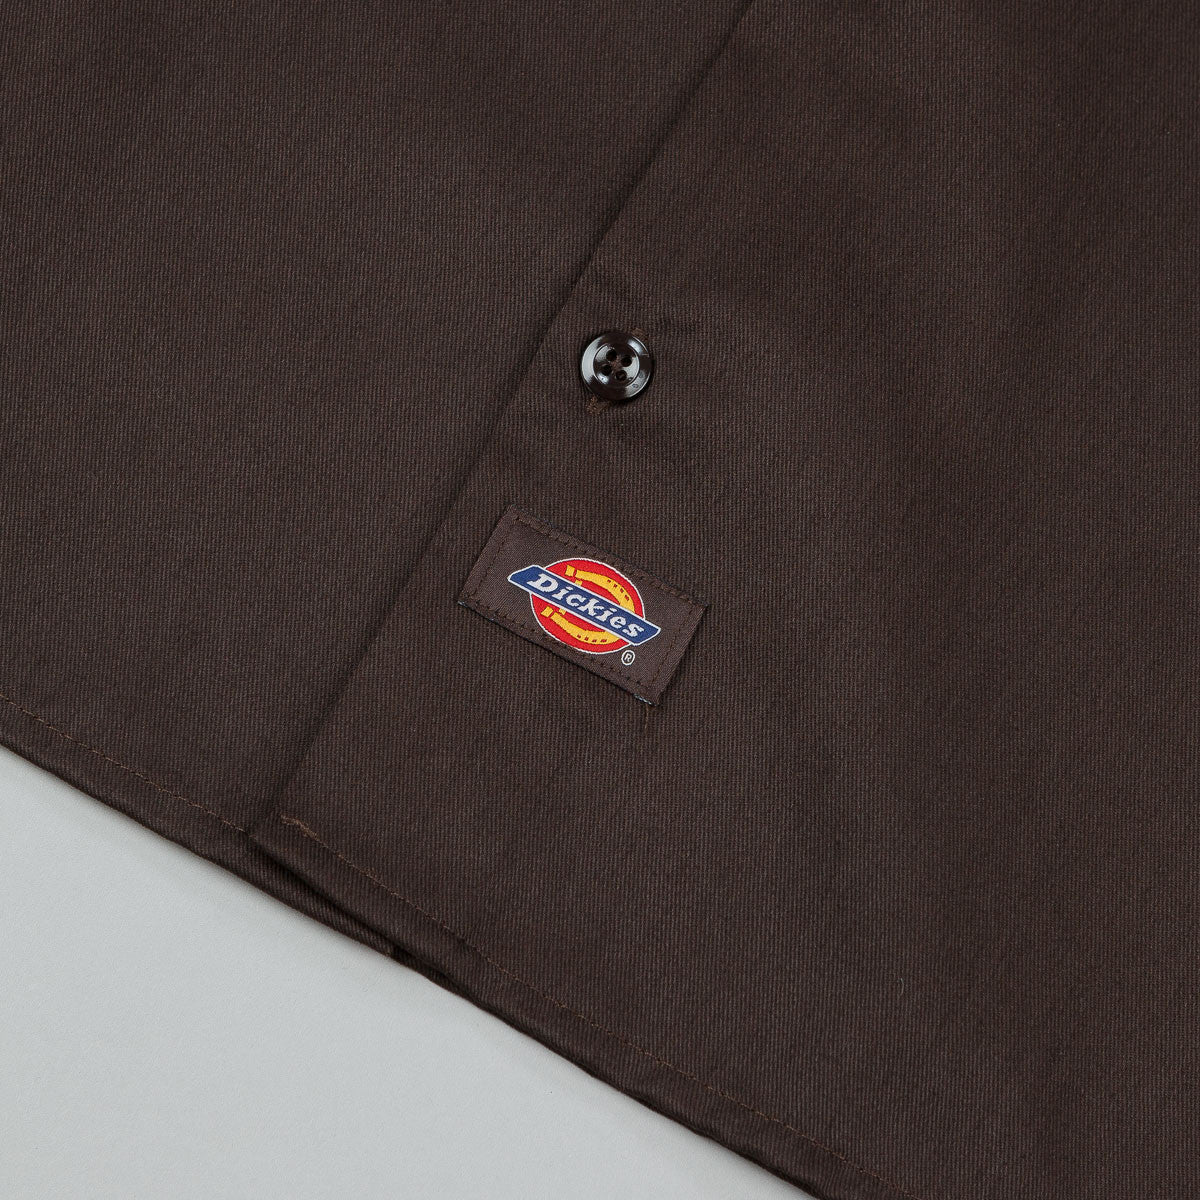 Dickies Short Sleeve Work Shirt - Dark Brown